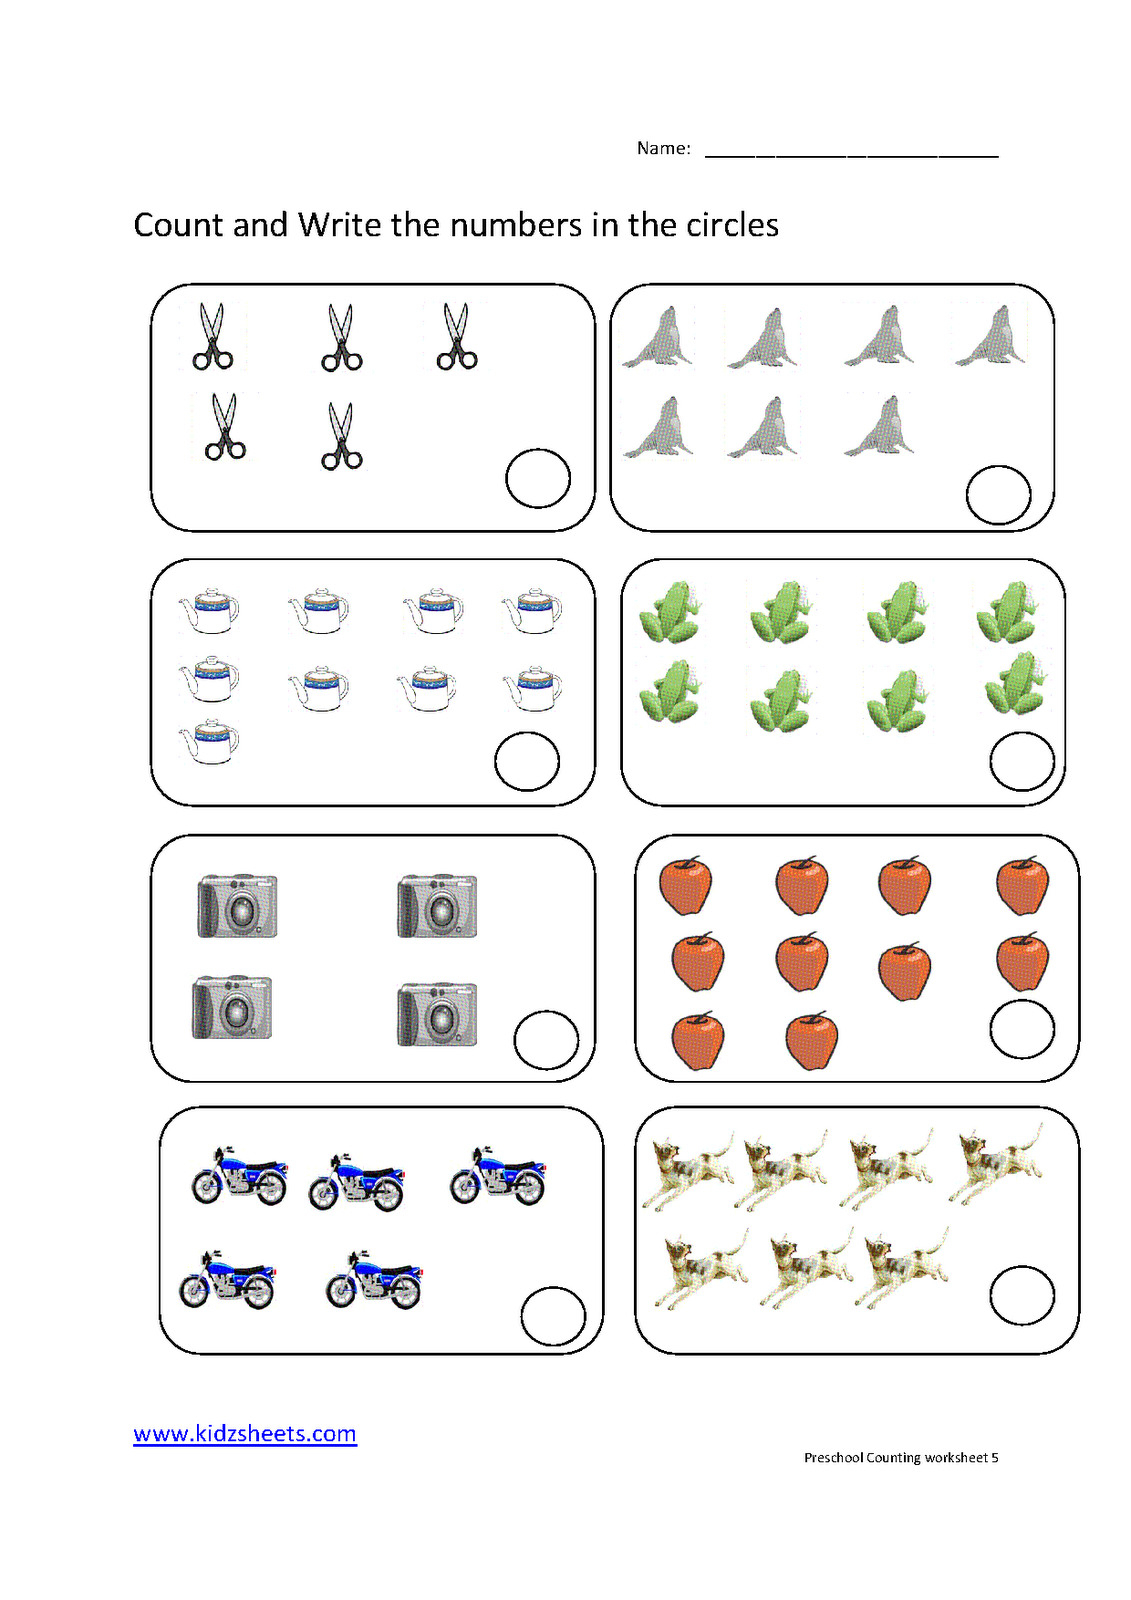 Preschool Counting Worksheets Free Printable Download Them